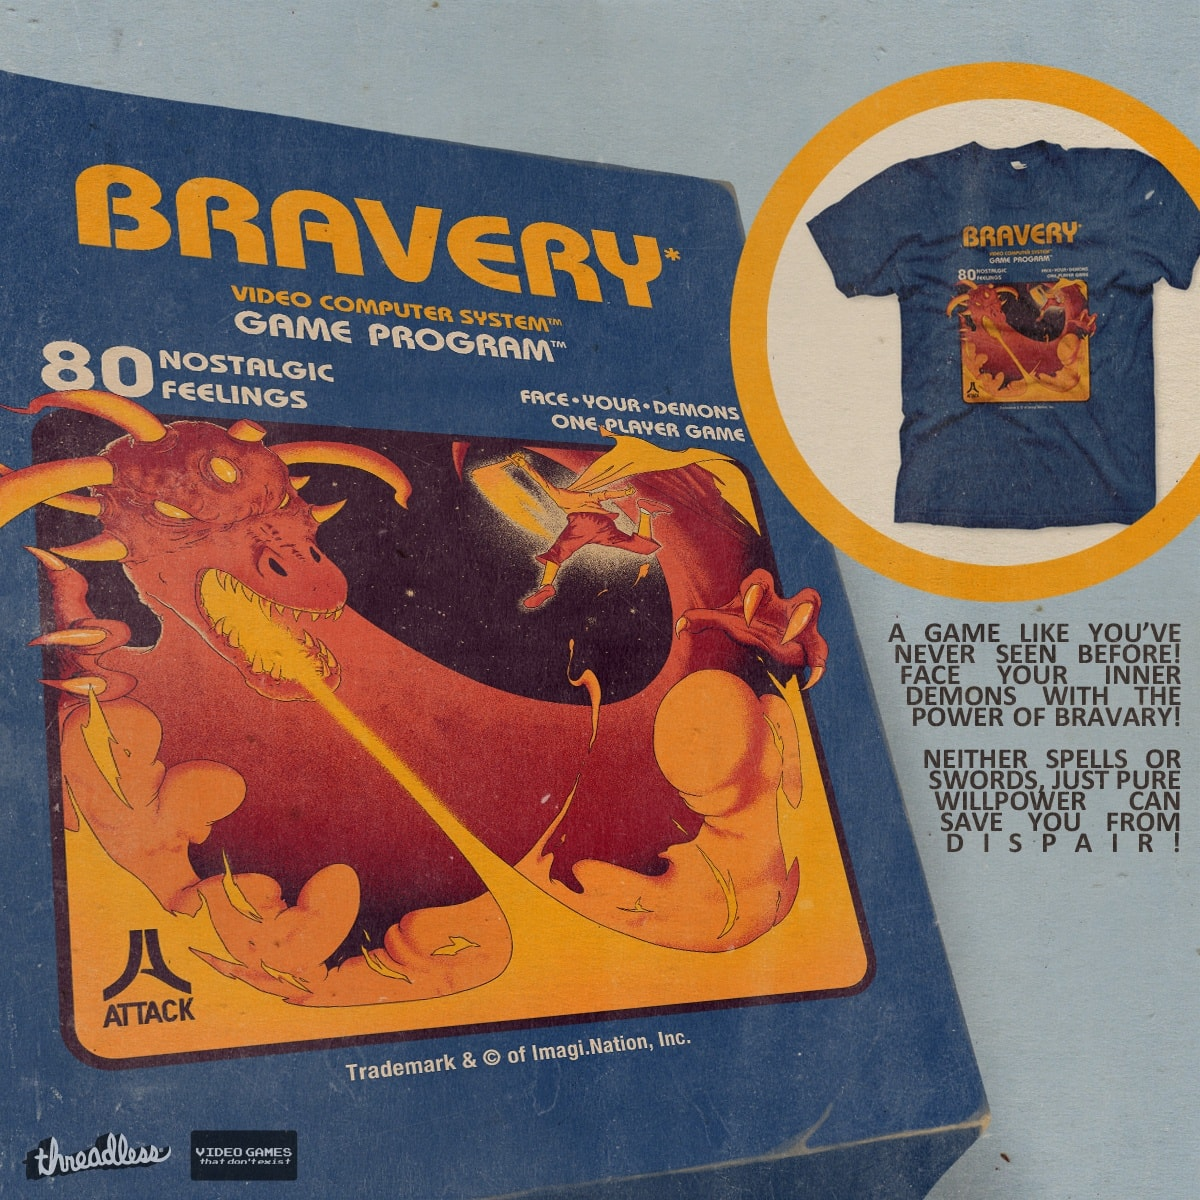 Bravery by mathiole on Threadless